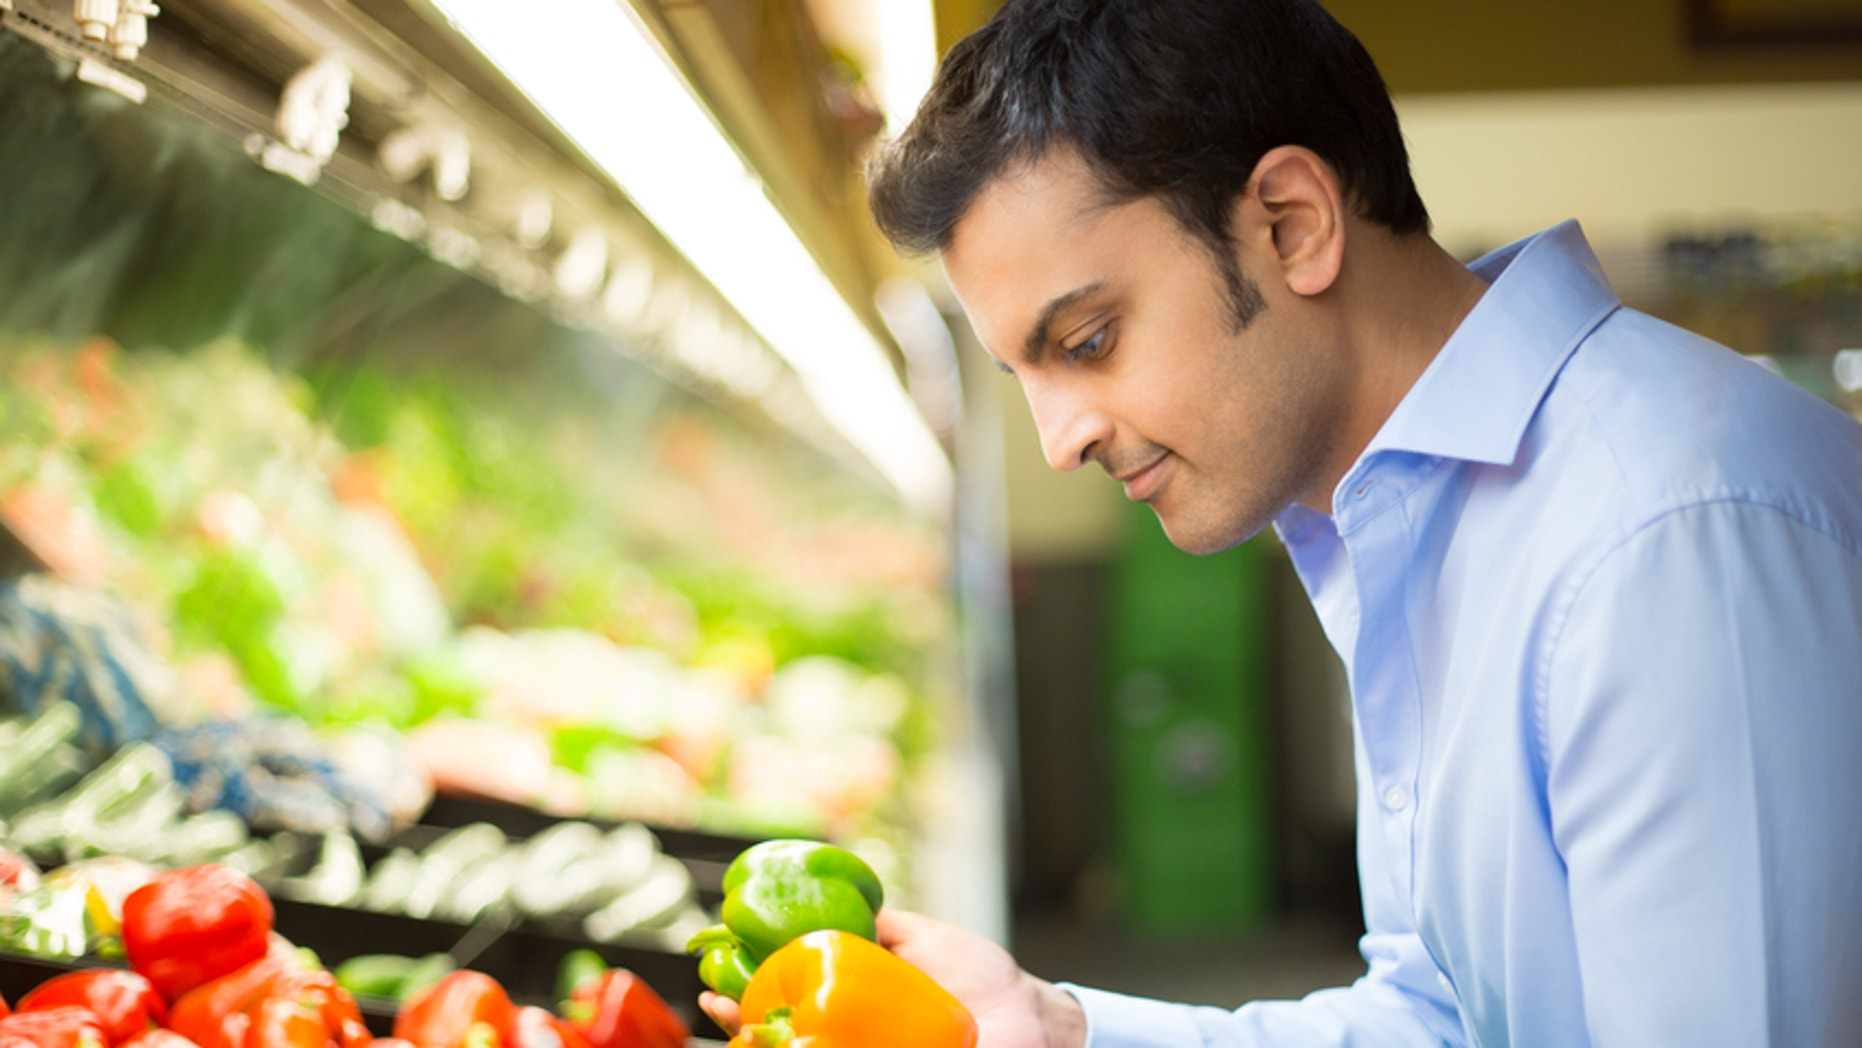 What's really going on with those vegetable washes at the supermarket?